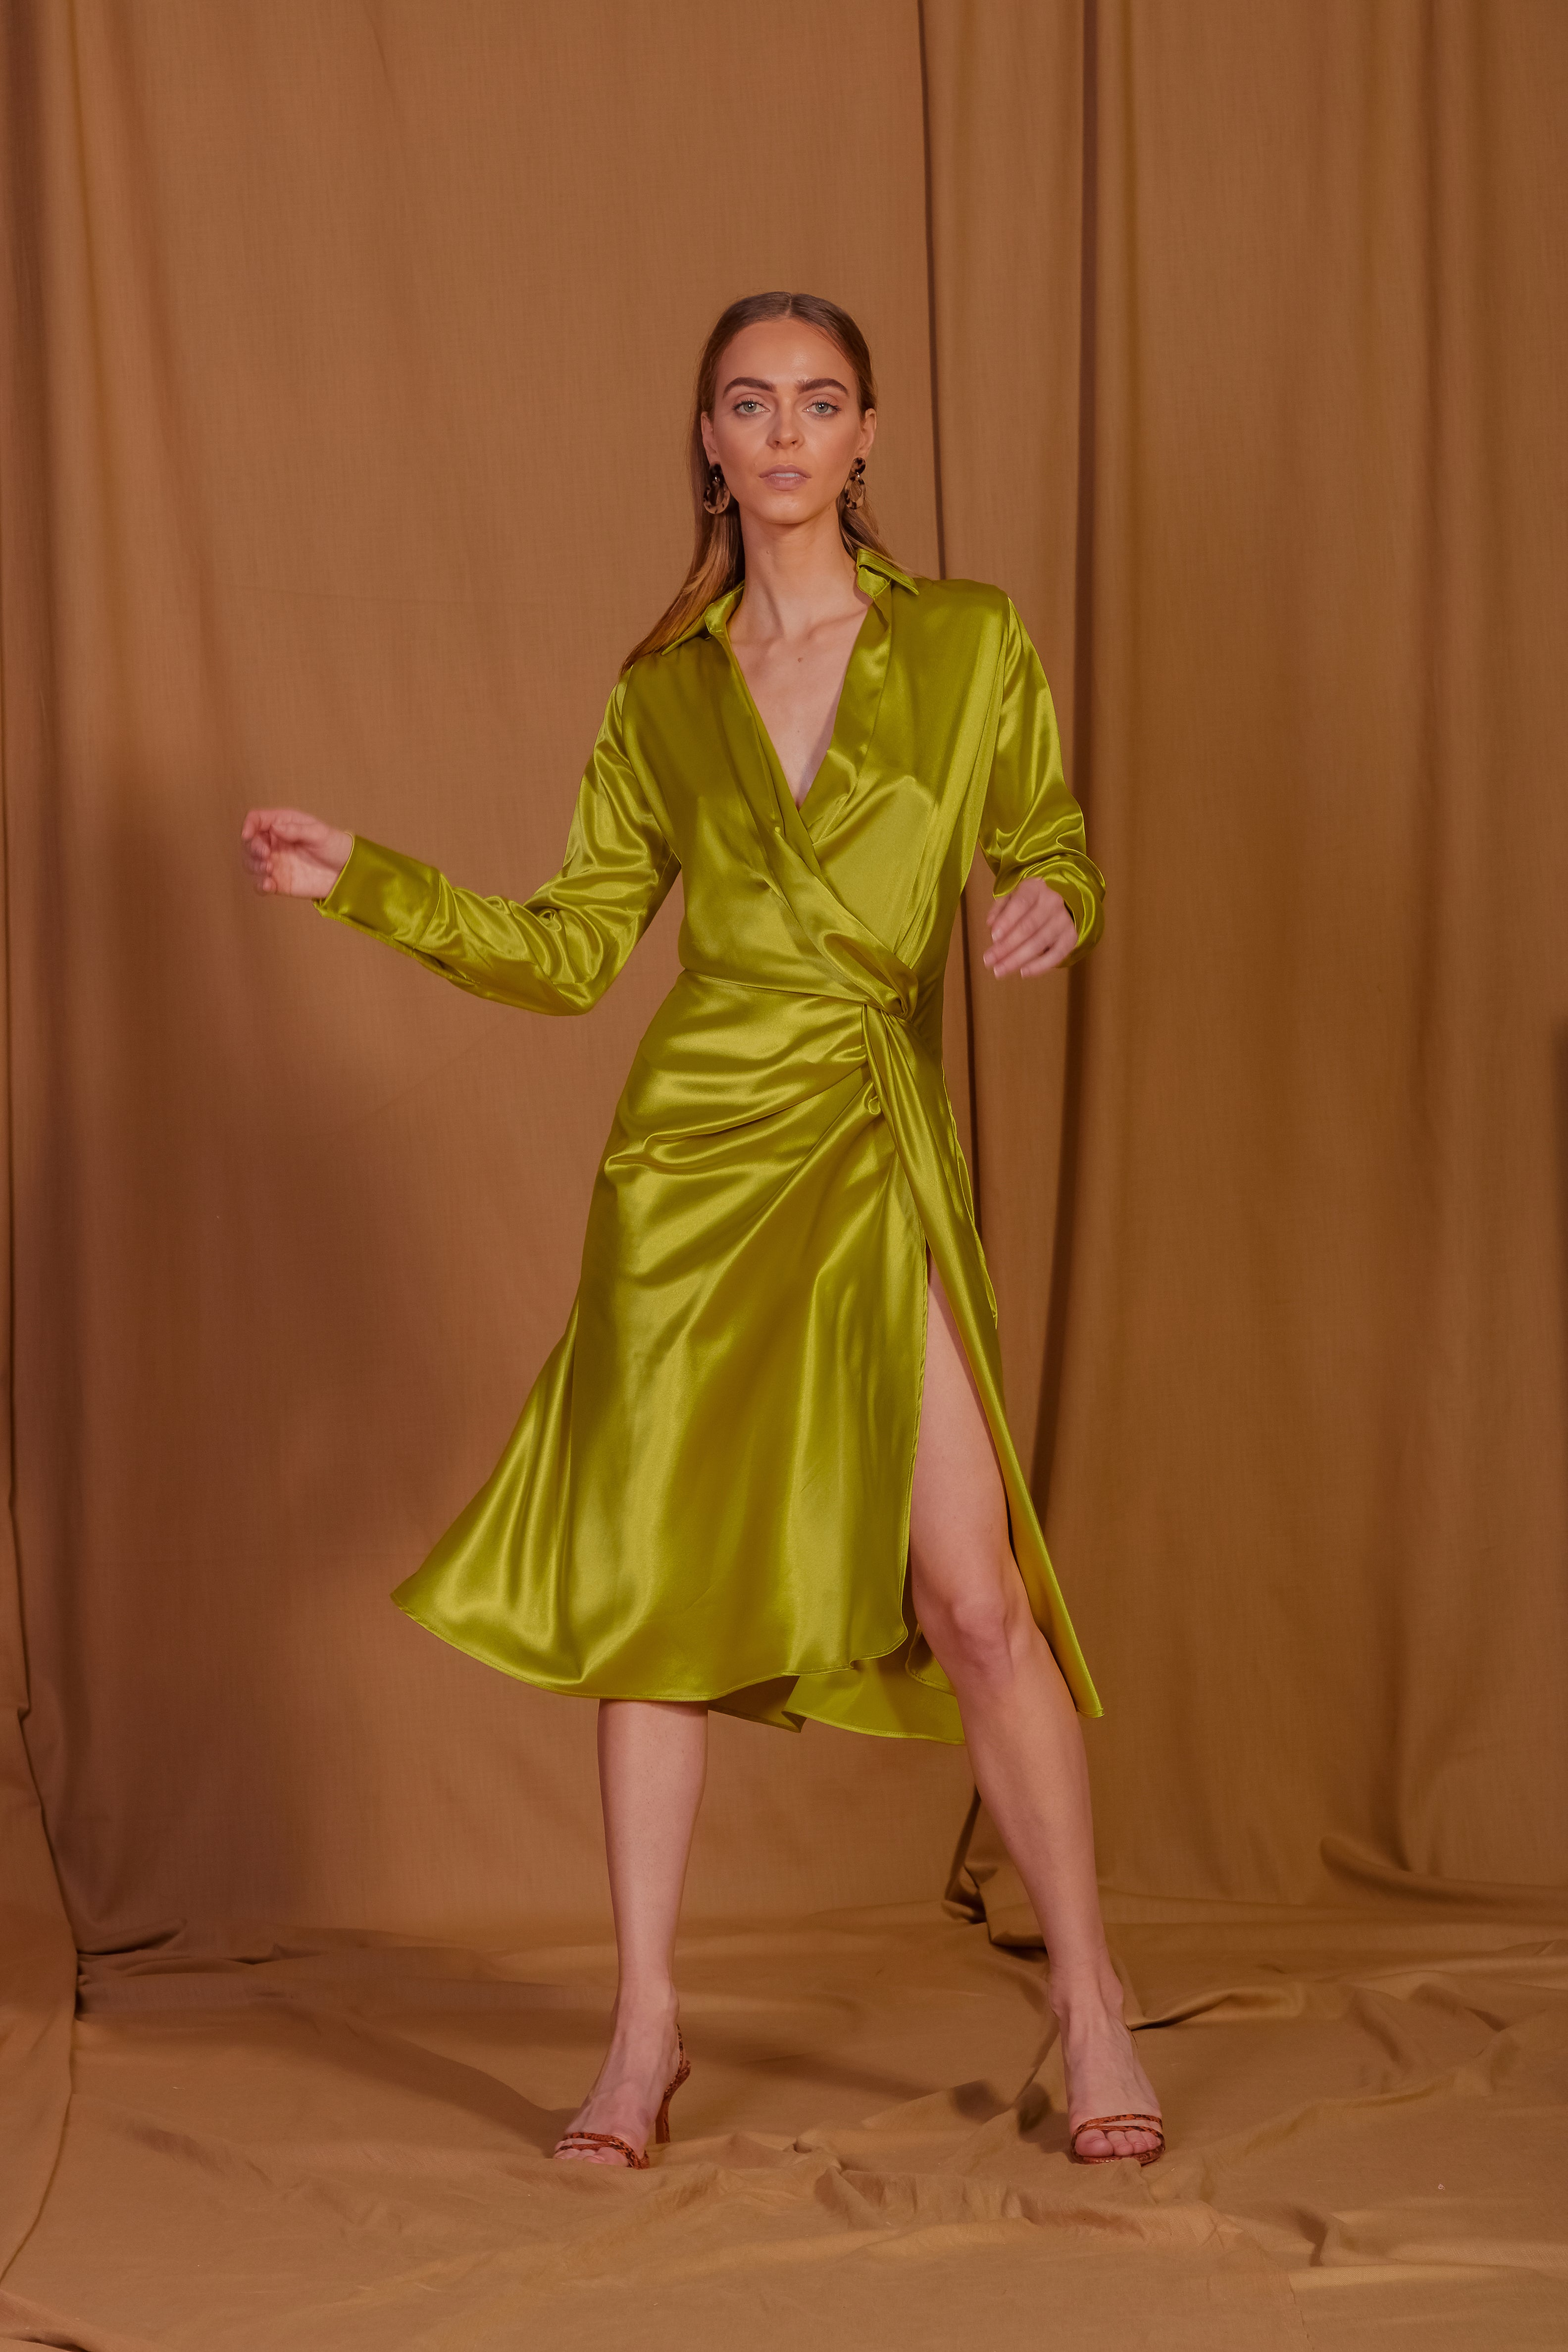 saint-mojavi - Maharaja Silk Charmeuse Wrap Dress - SAÏNT MOJAVÏ -